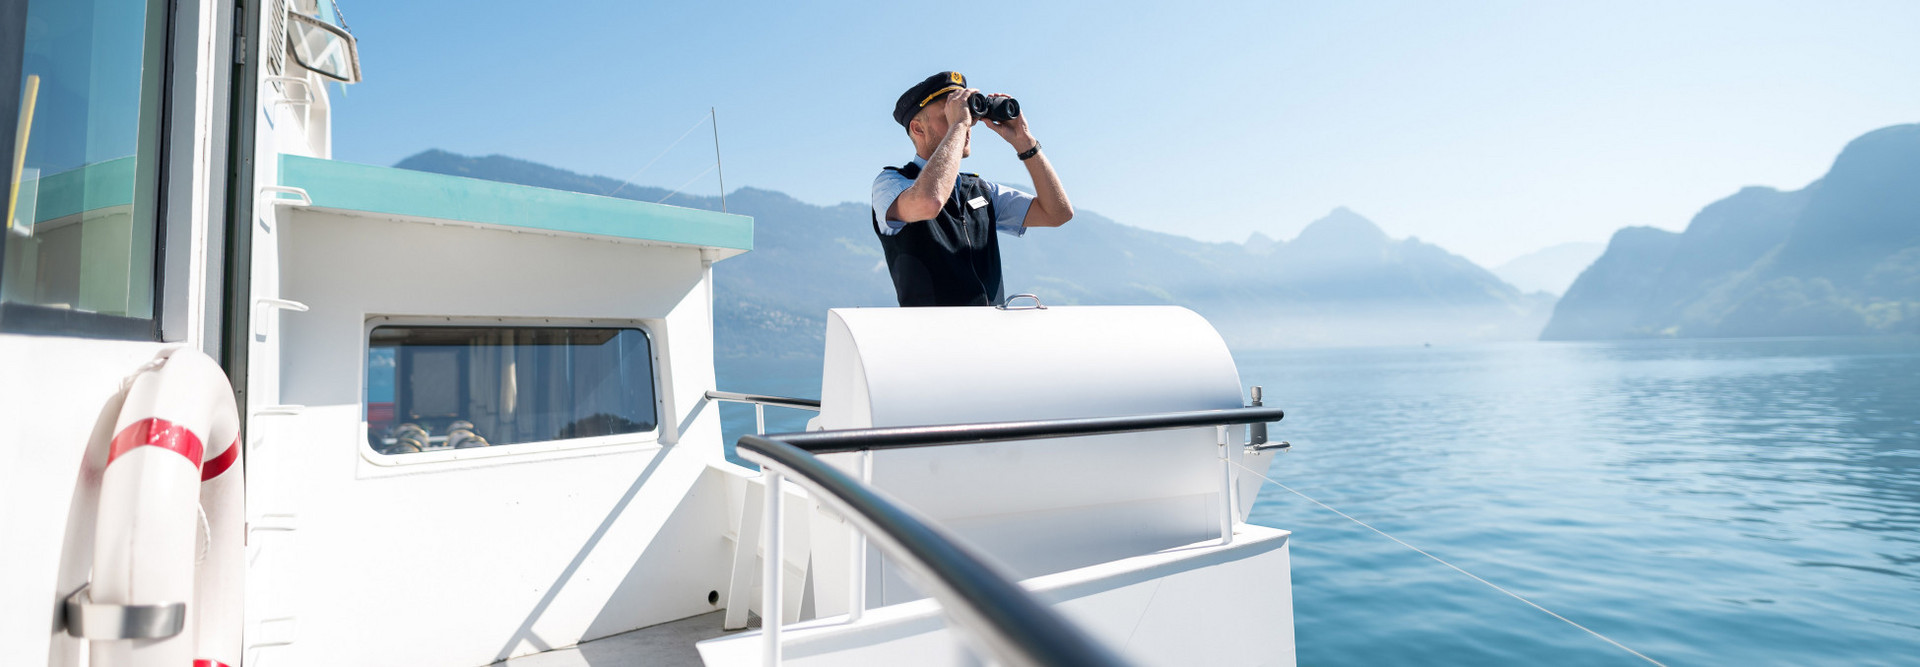 Skipper observes the goings-on on Lake Lucerne from the Nock with binoculars.